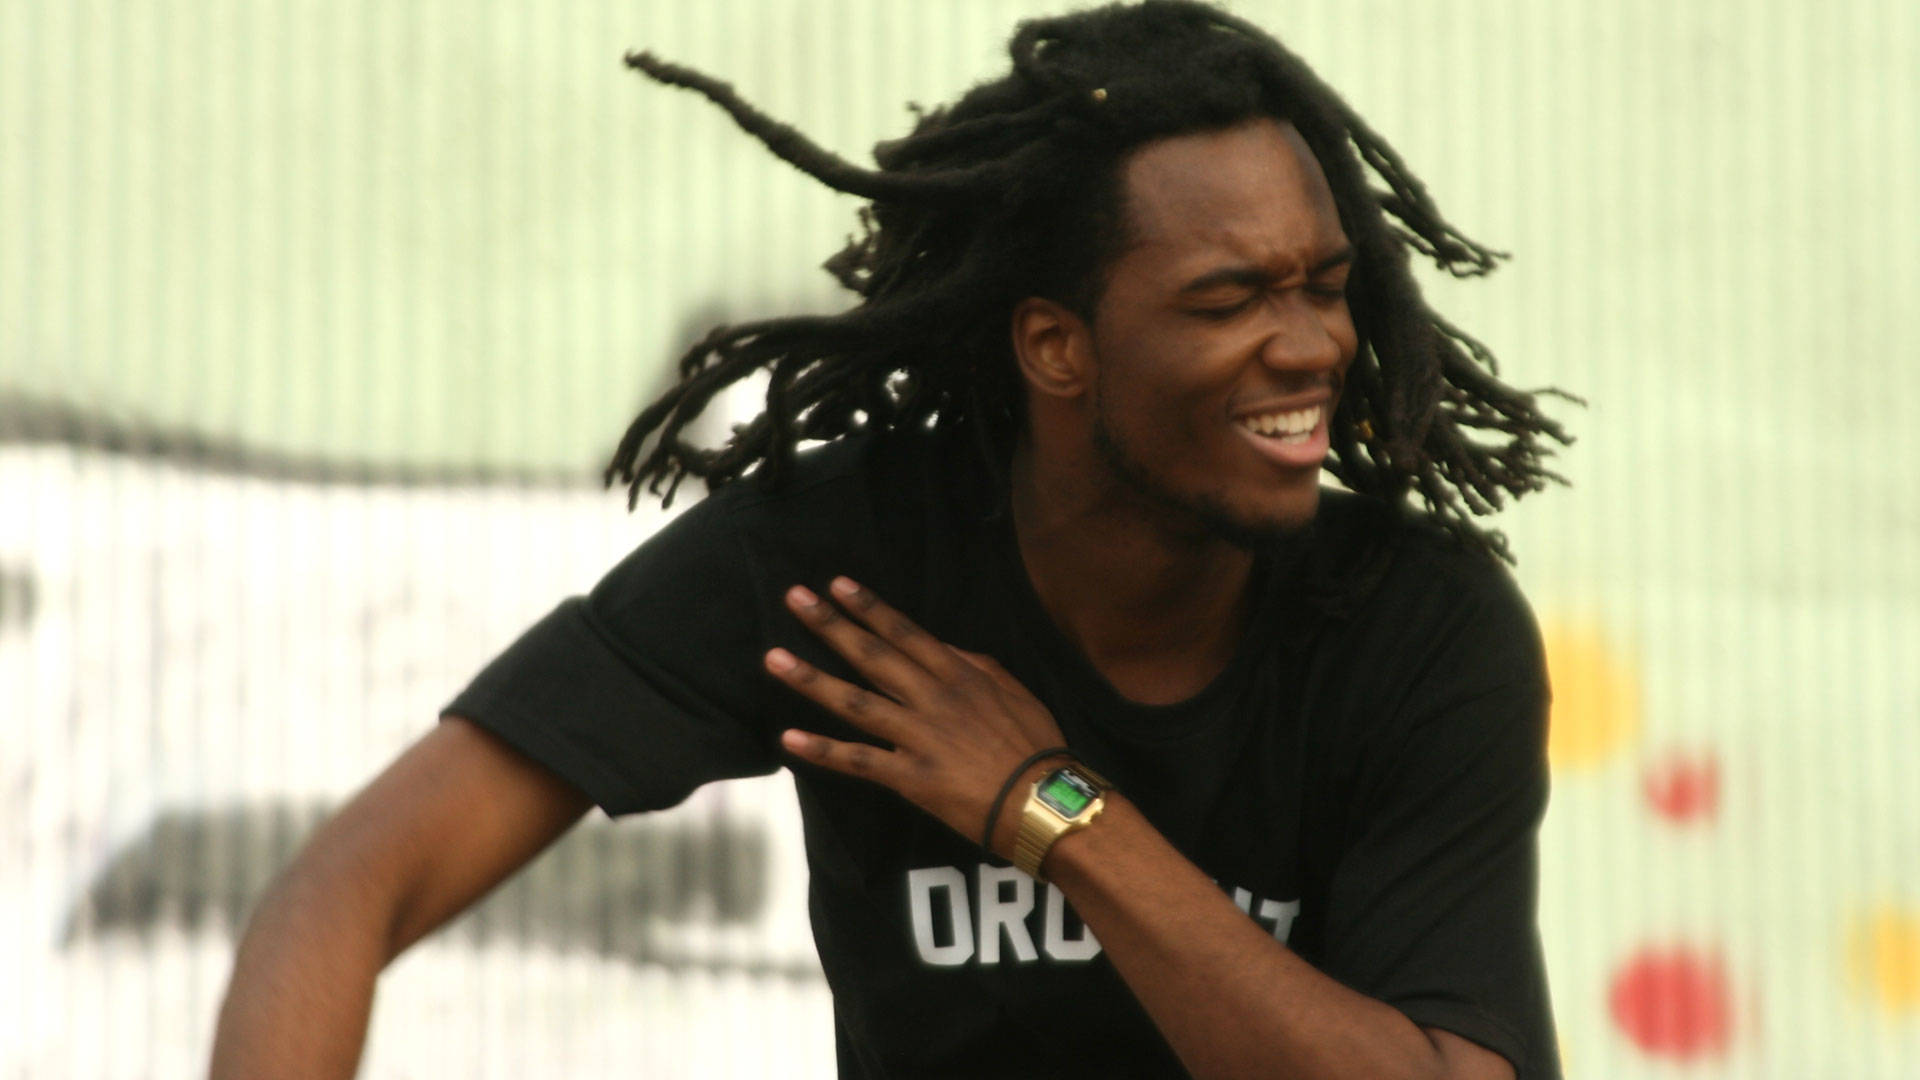 Saba, the Chance the Rapper affiliate from Chicago, performs at Hiero Day 2017 in West Oakland. Gabe Meline/KQED